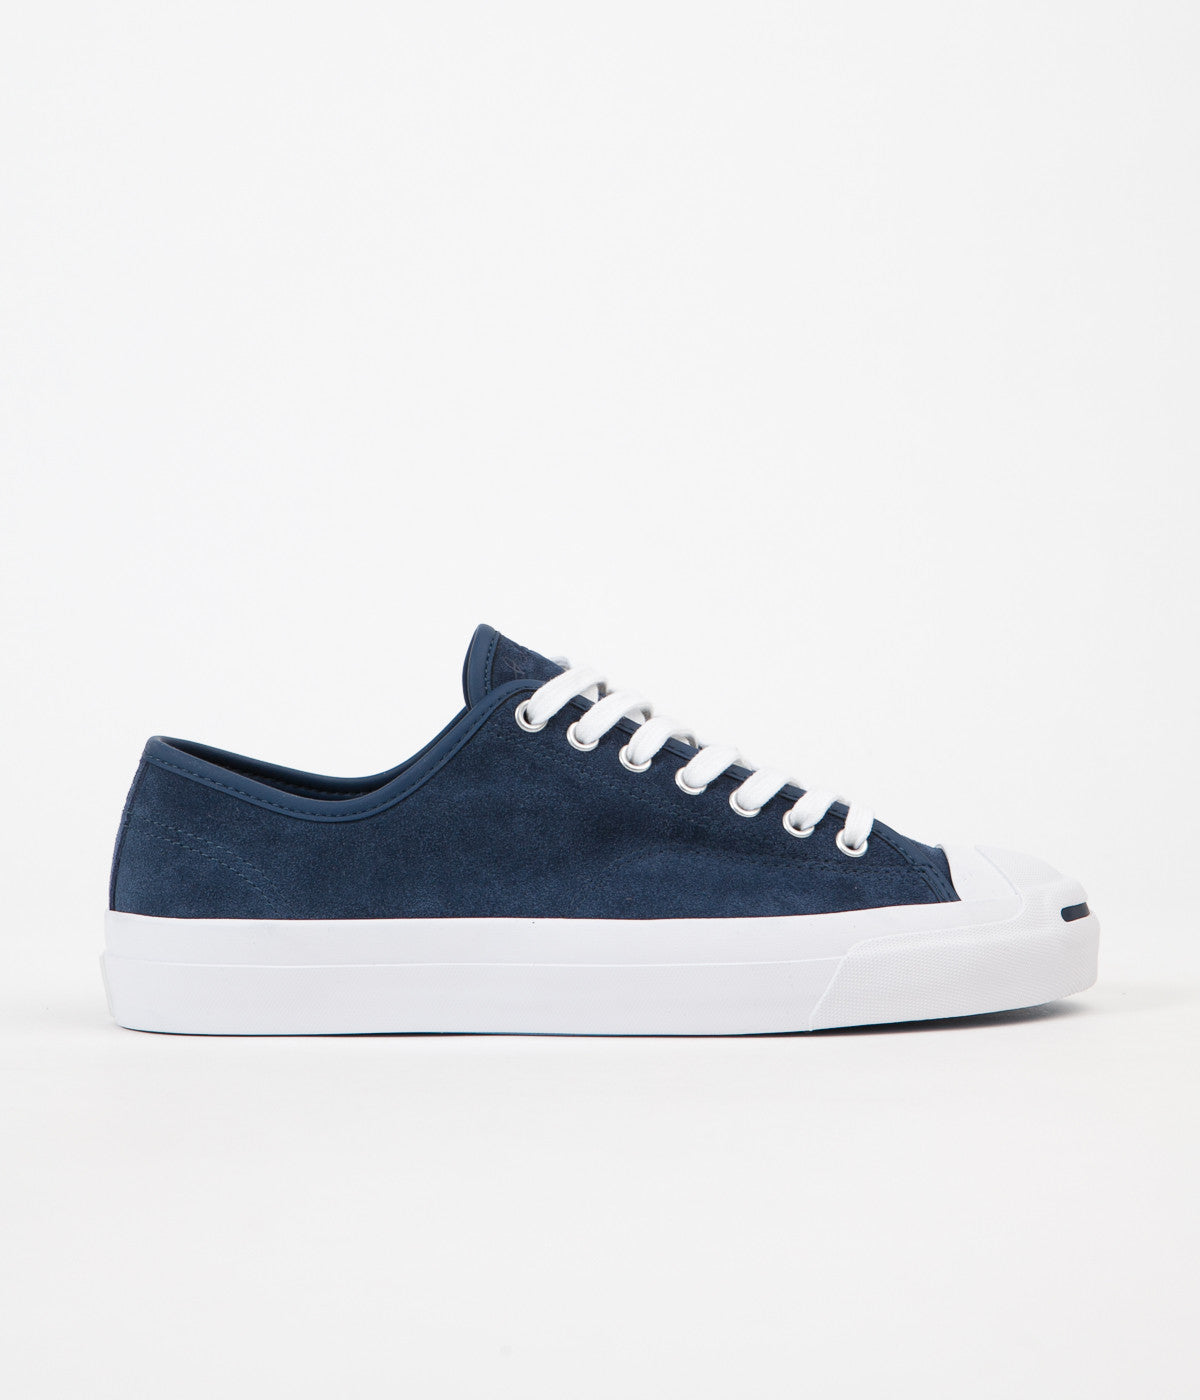 5d716e6881a1 Converse x Polar Jack Purcell JP Pro Ox Shoes - Navy   Navy   White ...